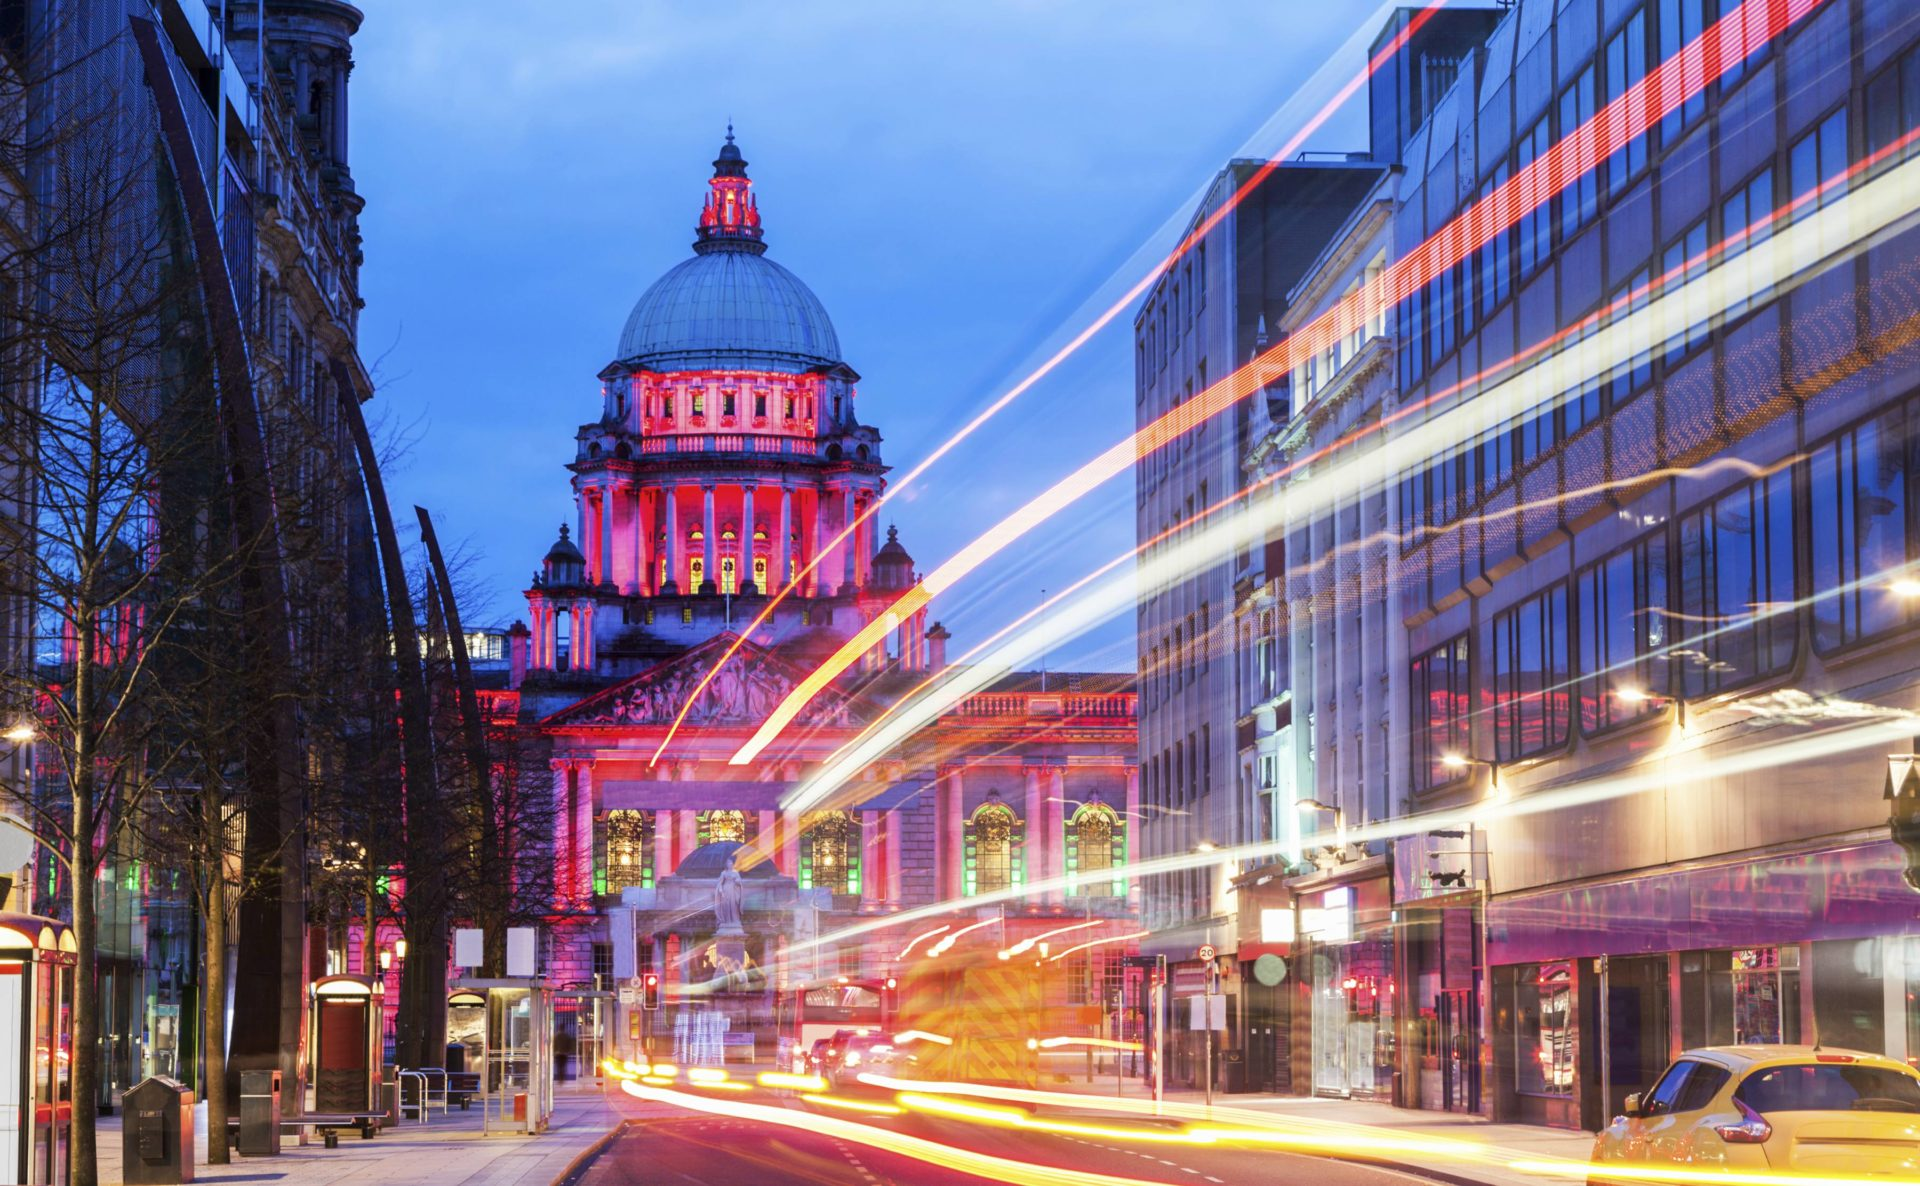 Belfast's proximity to the EU country of the Republic of Ireland could make it a savvy location for investors to buy. Could this be one of the best areas in the UK to buy property?